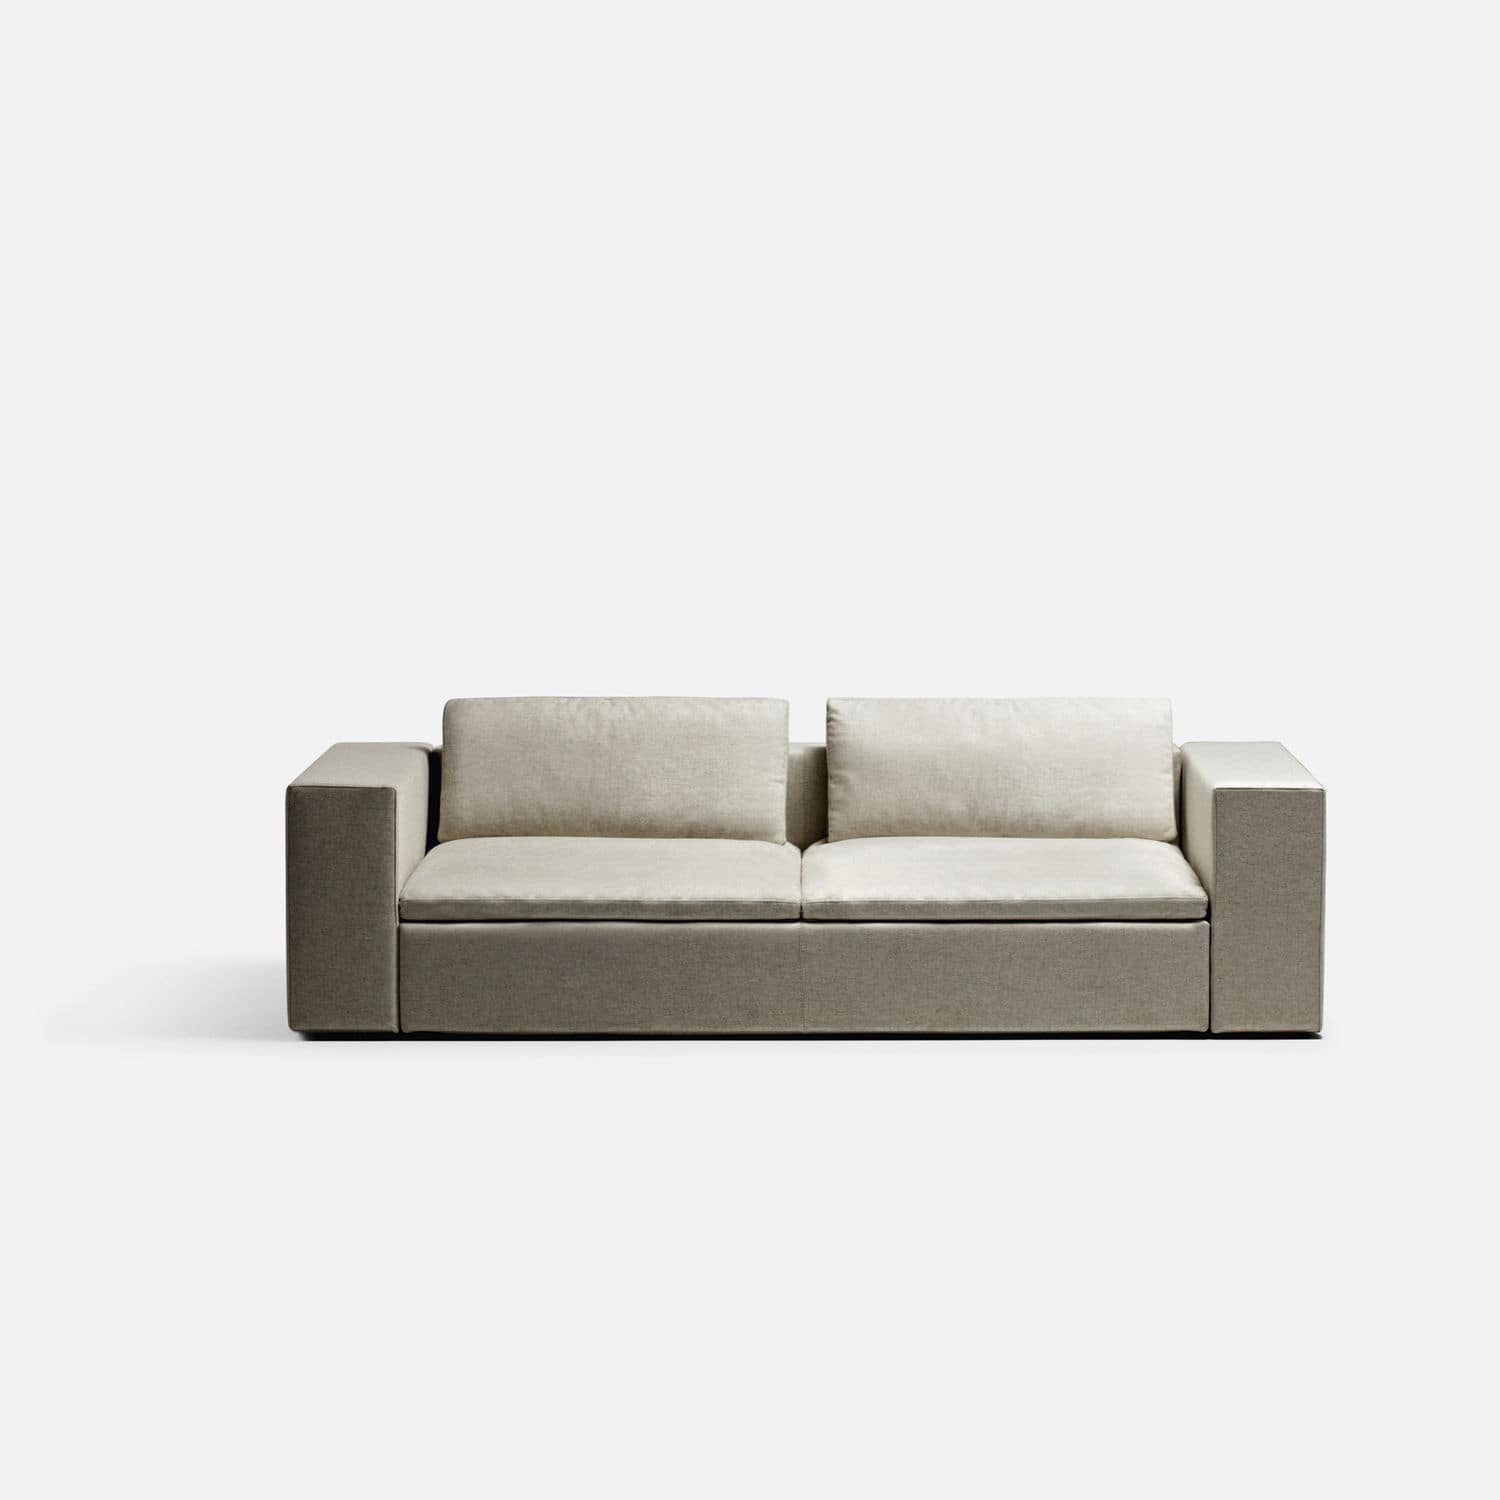 Modular sofa corner contemporary leather PUZZLE by LC made